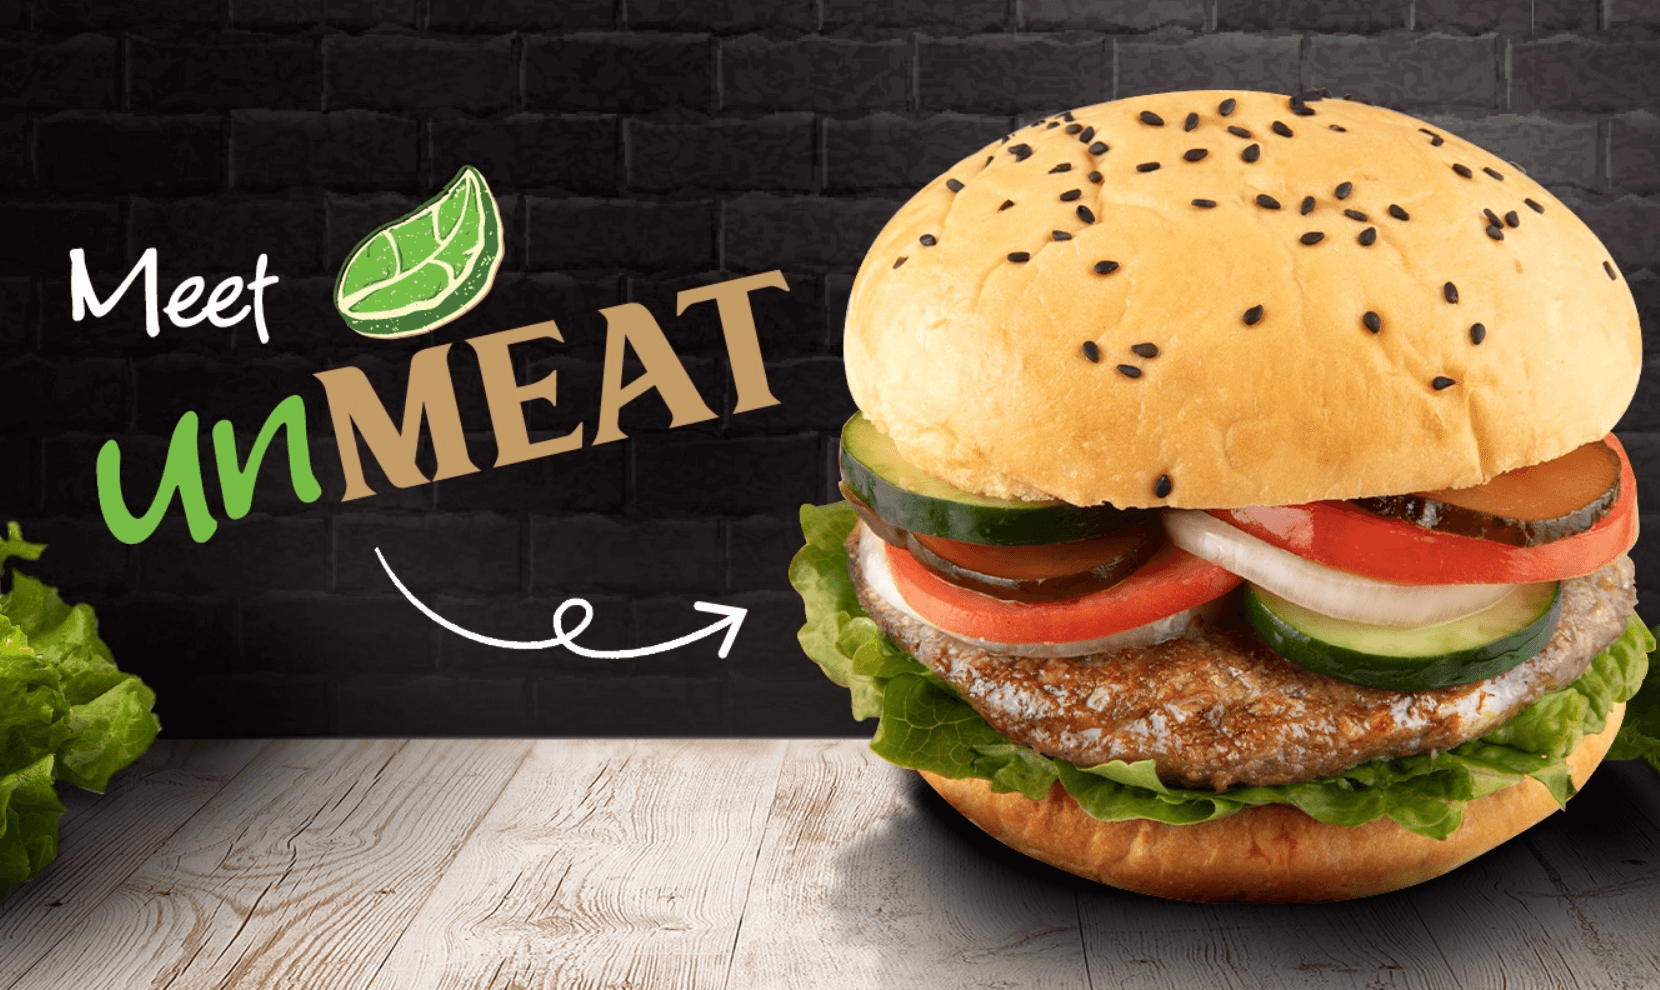 century-pacific-launches-unmeat-brand-the-philippines-first-vegan-meat-alternative